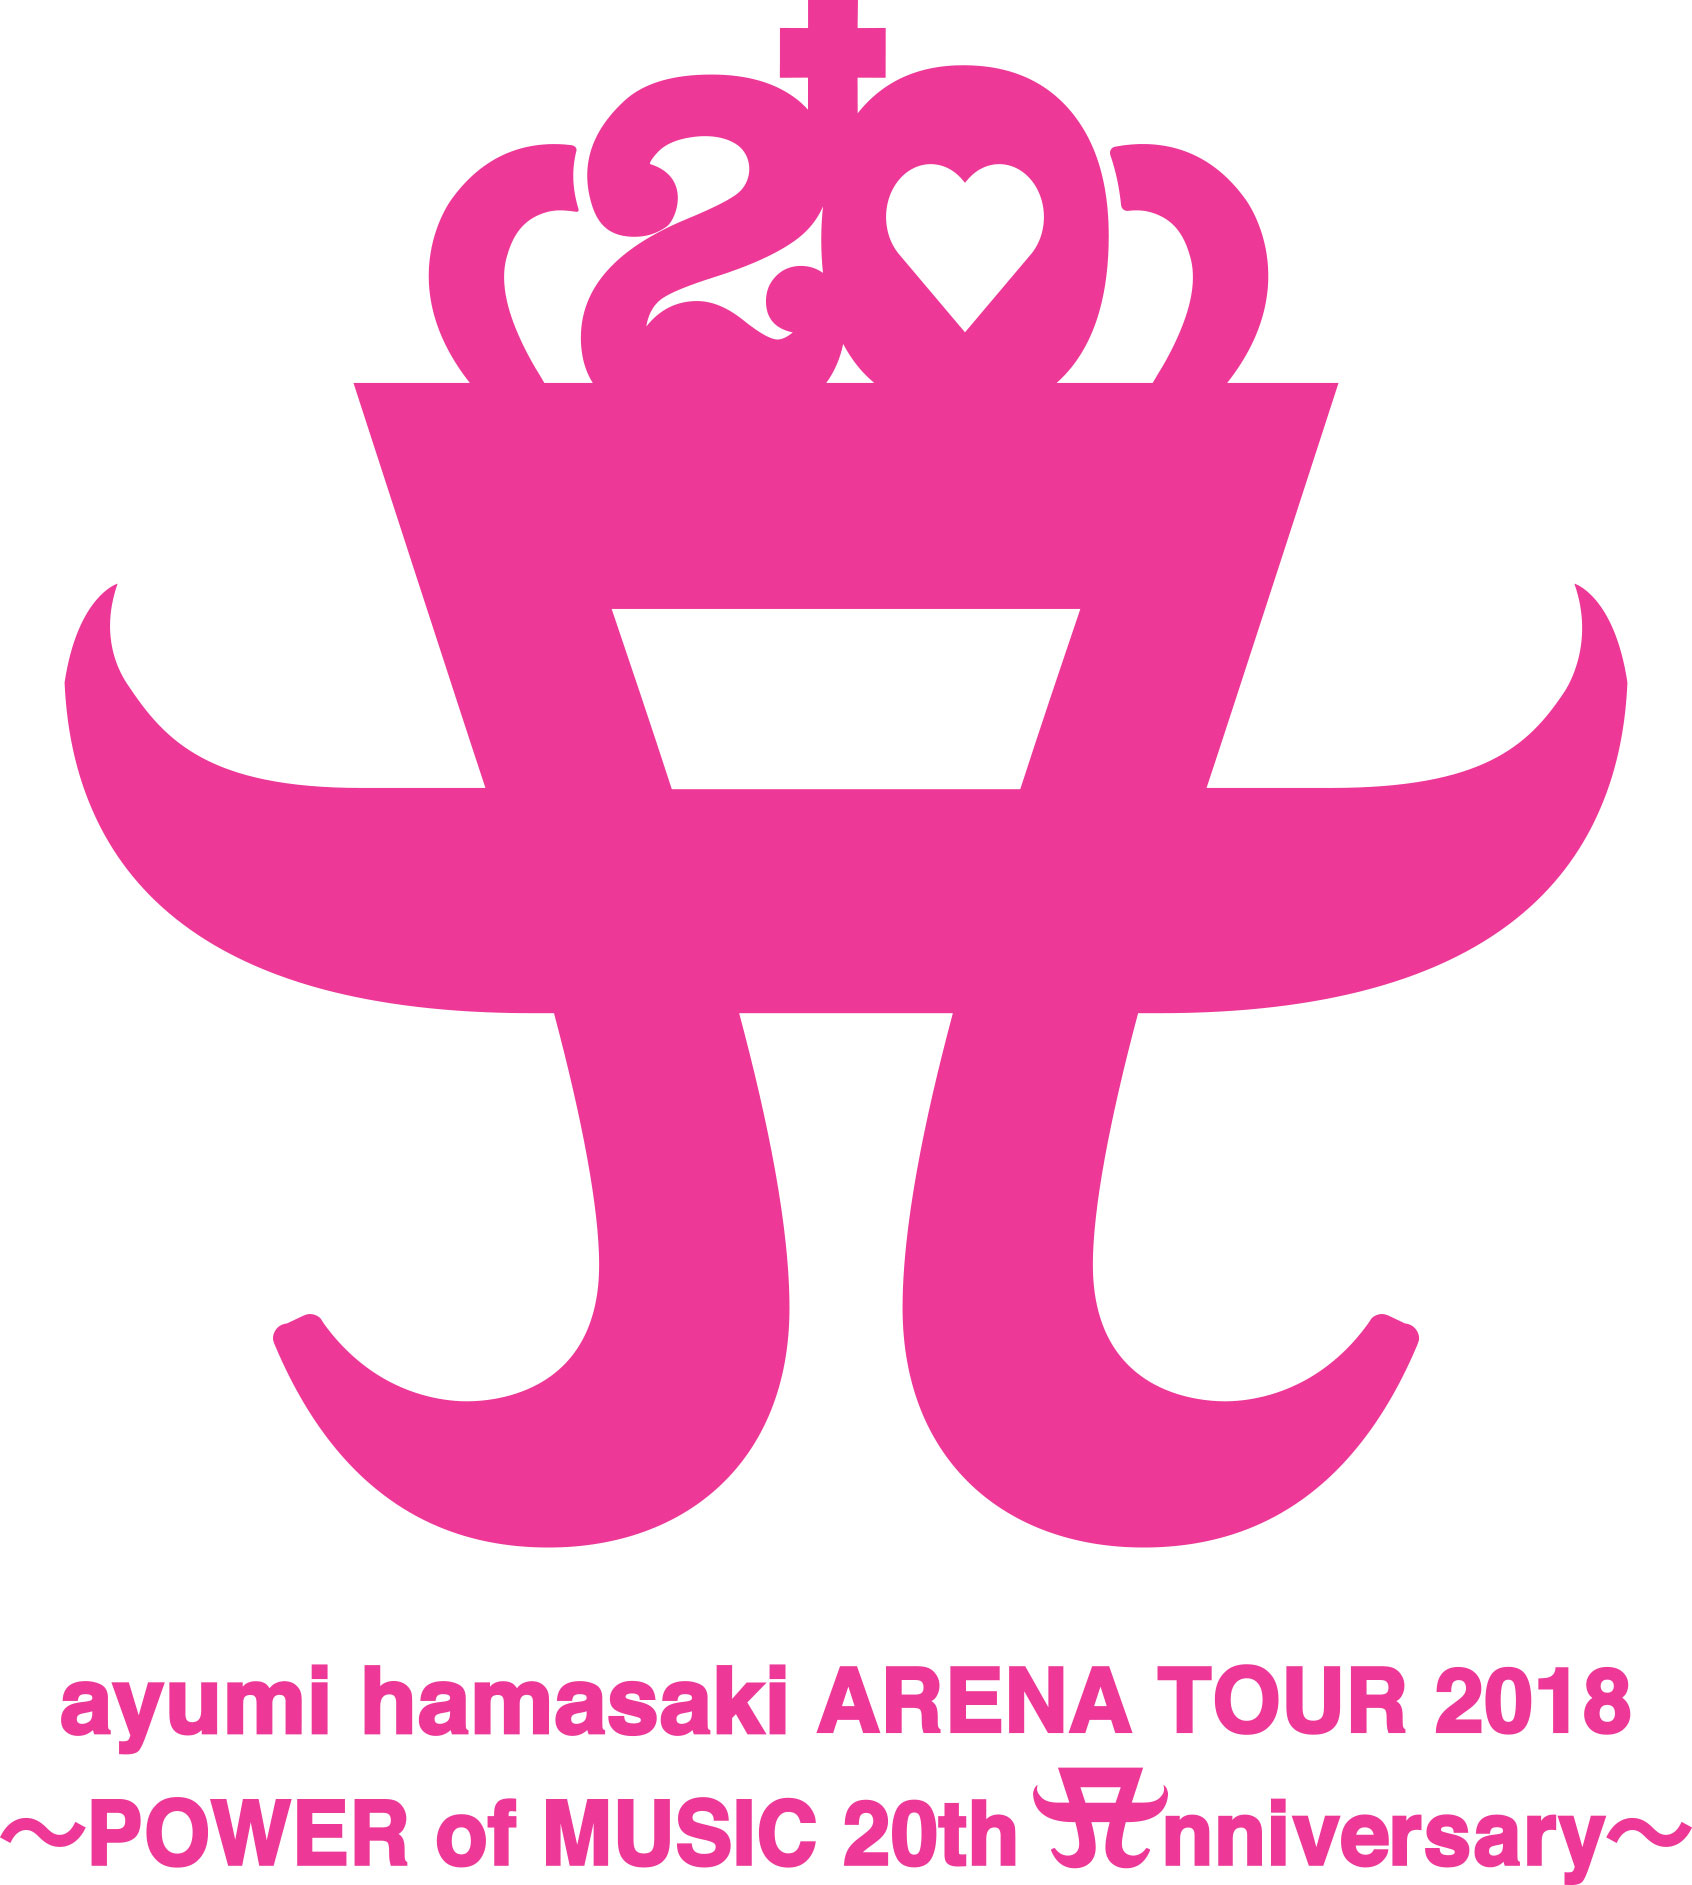 [May 12nd /Fukuoka] ayumi hamasaki ARENA TOUR 2018 ~POWER of MUSIC 20th Anniversary~